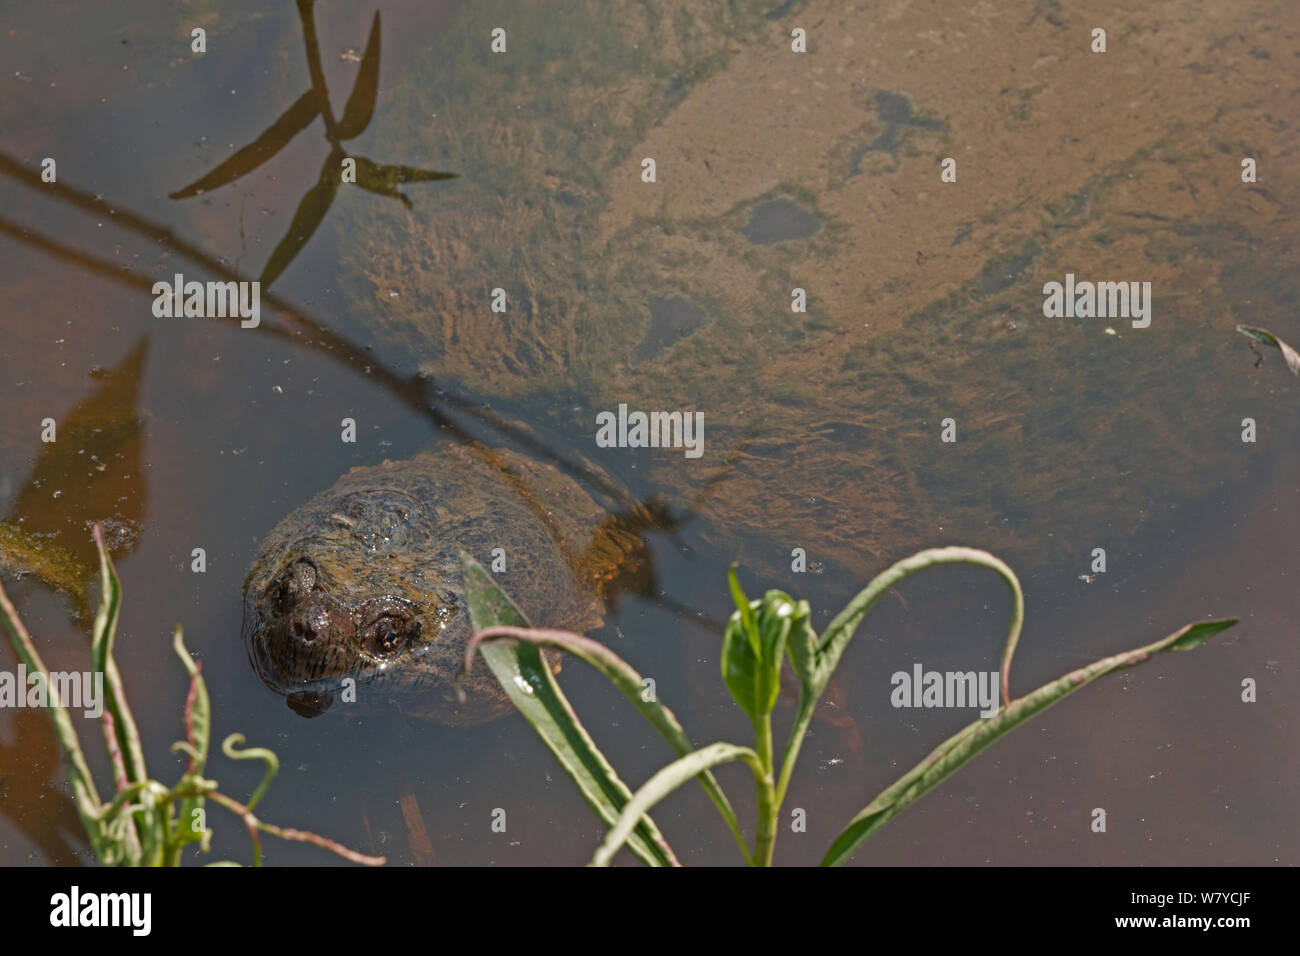 Snapping turtle (Chelydra serpentina) breathing at surface, covered in algae, Virginia, USA. September. Stock Photo